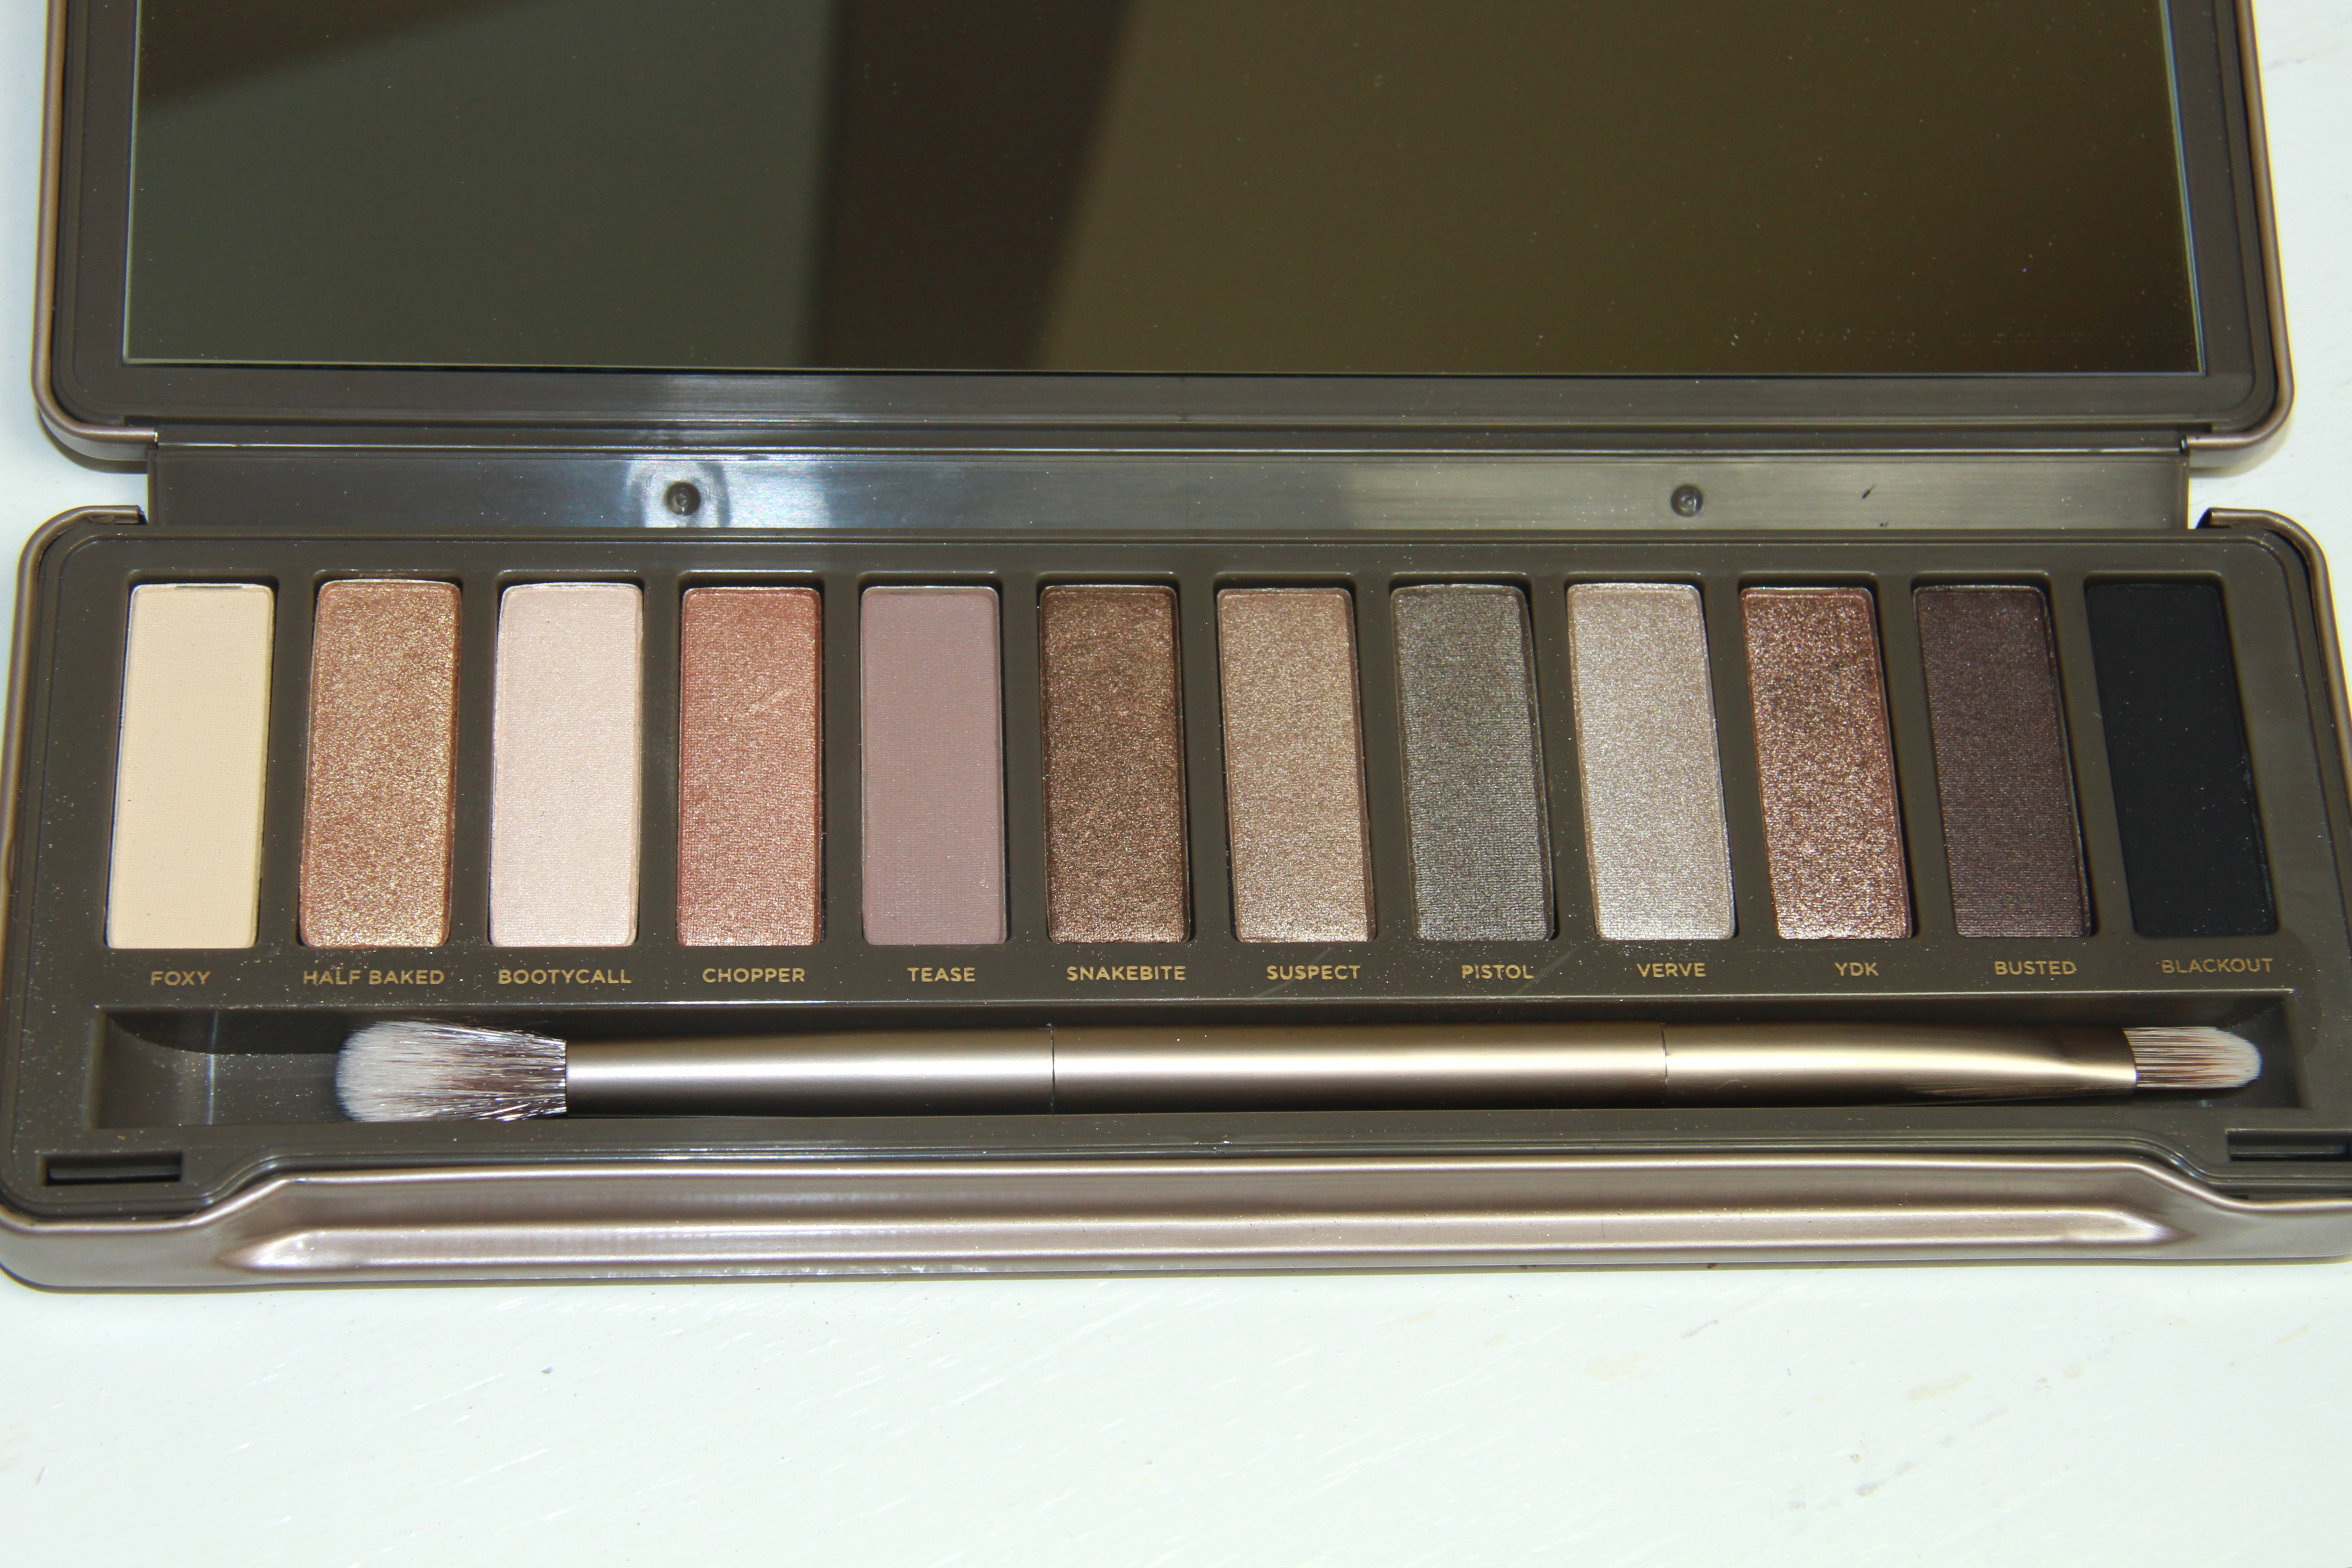 Urban Decay Naked vs Naked 2 Eyeshadow Palette Comparisons